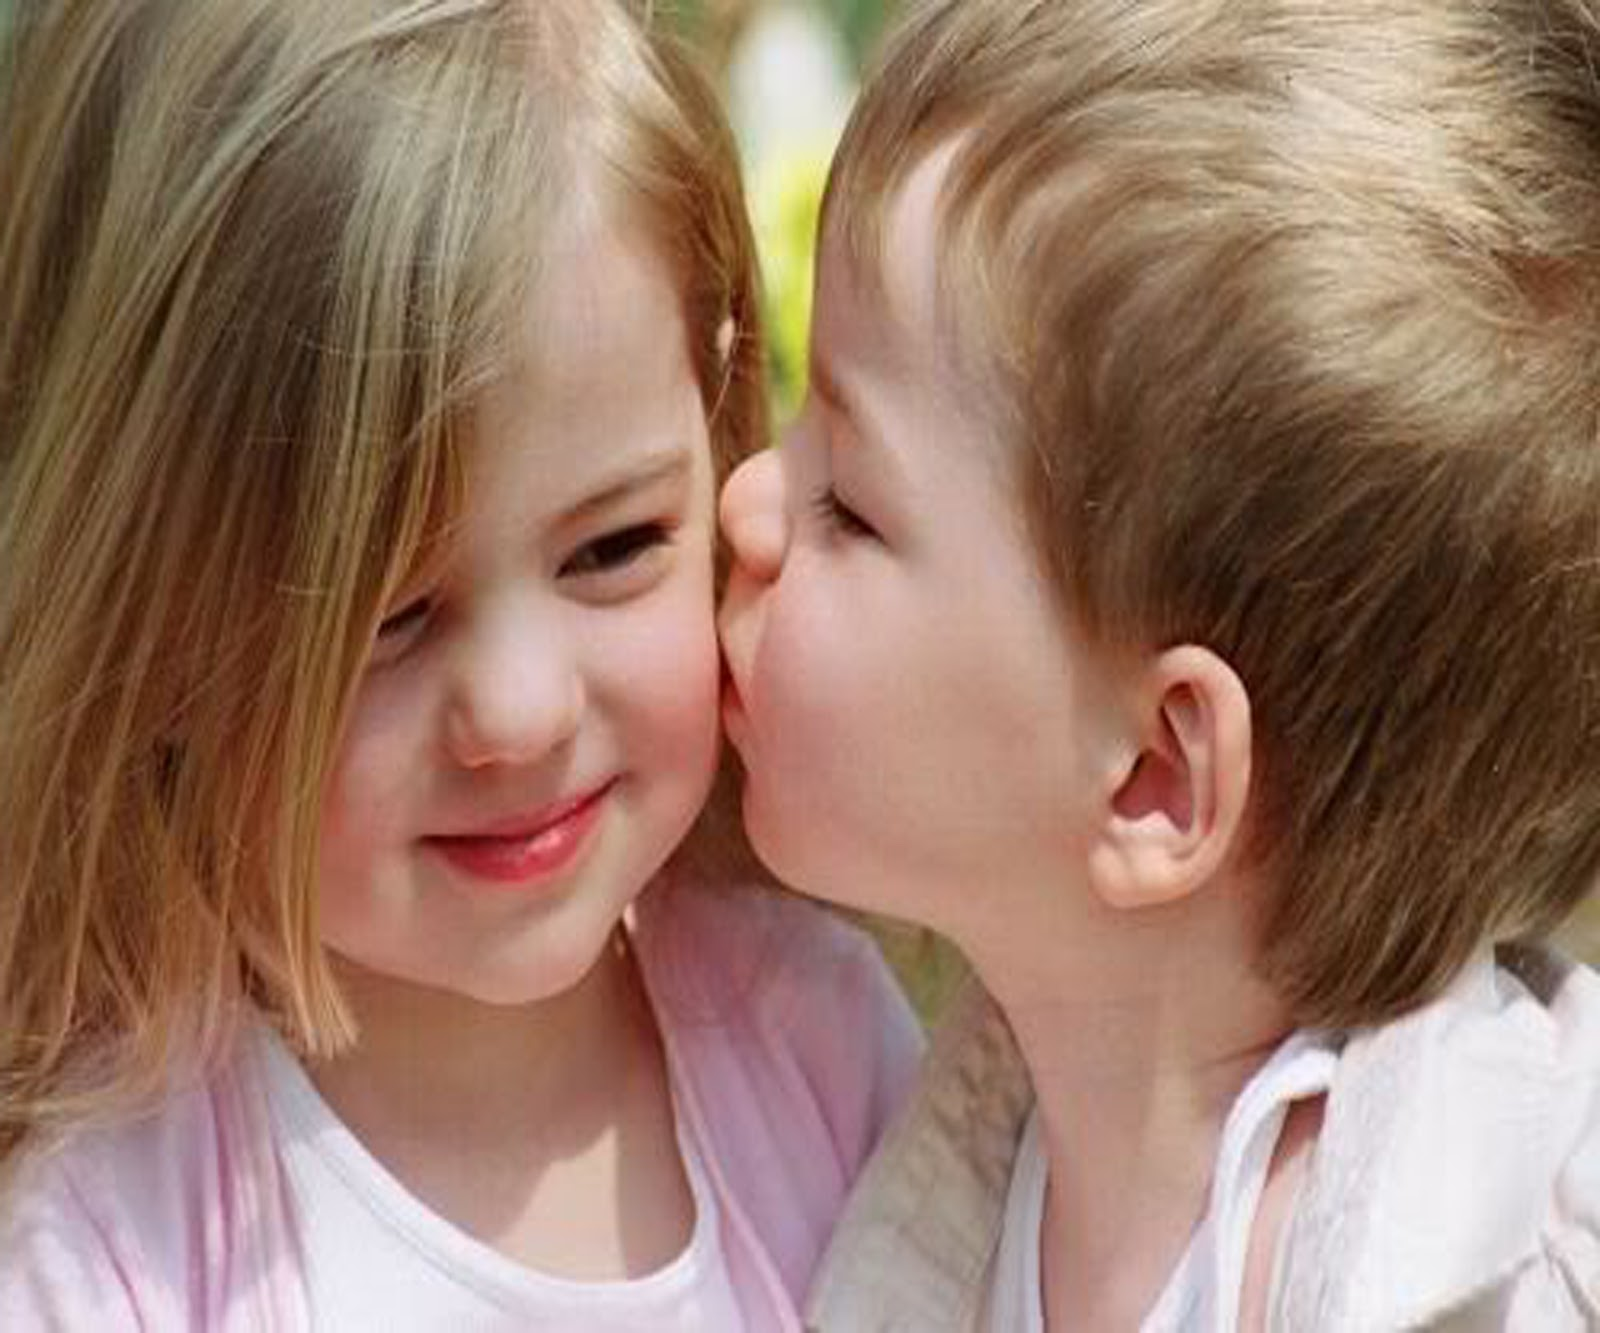 Beautiful Cute Baby Kissing Images HD free